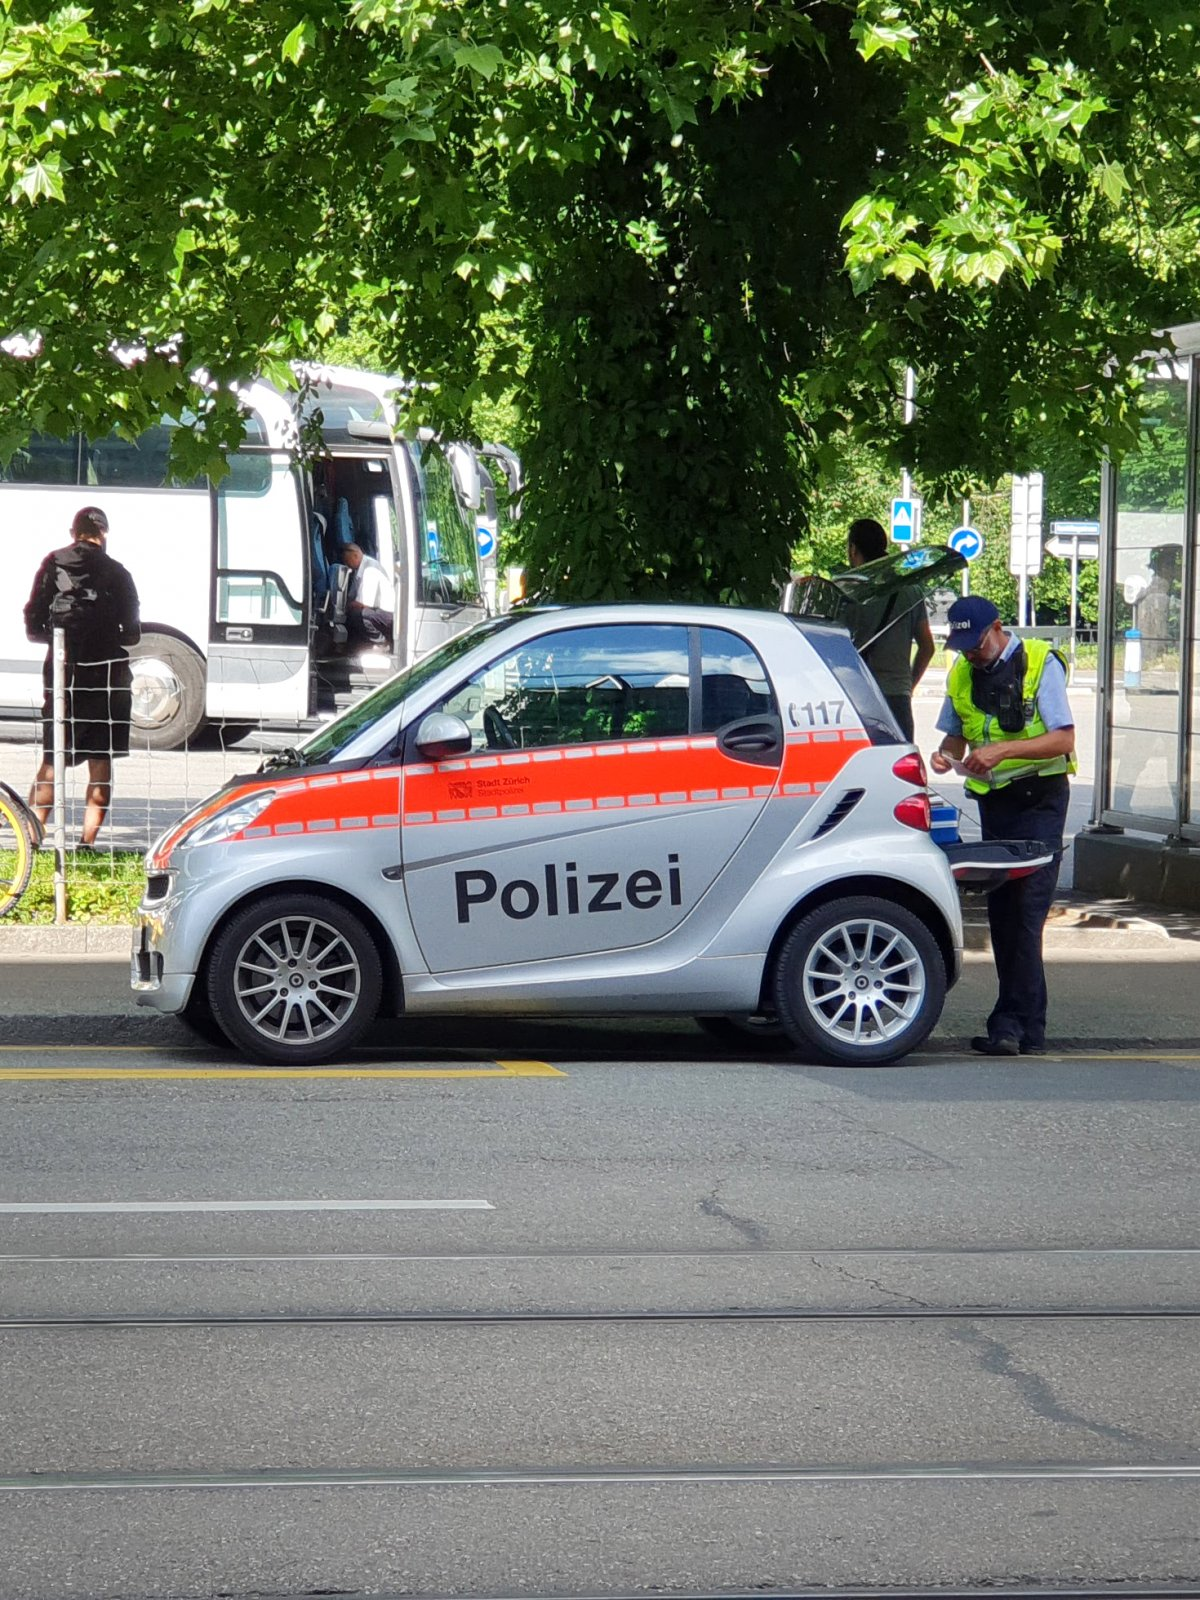 Smart police car in Zürich, Switzerland